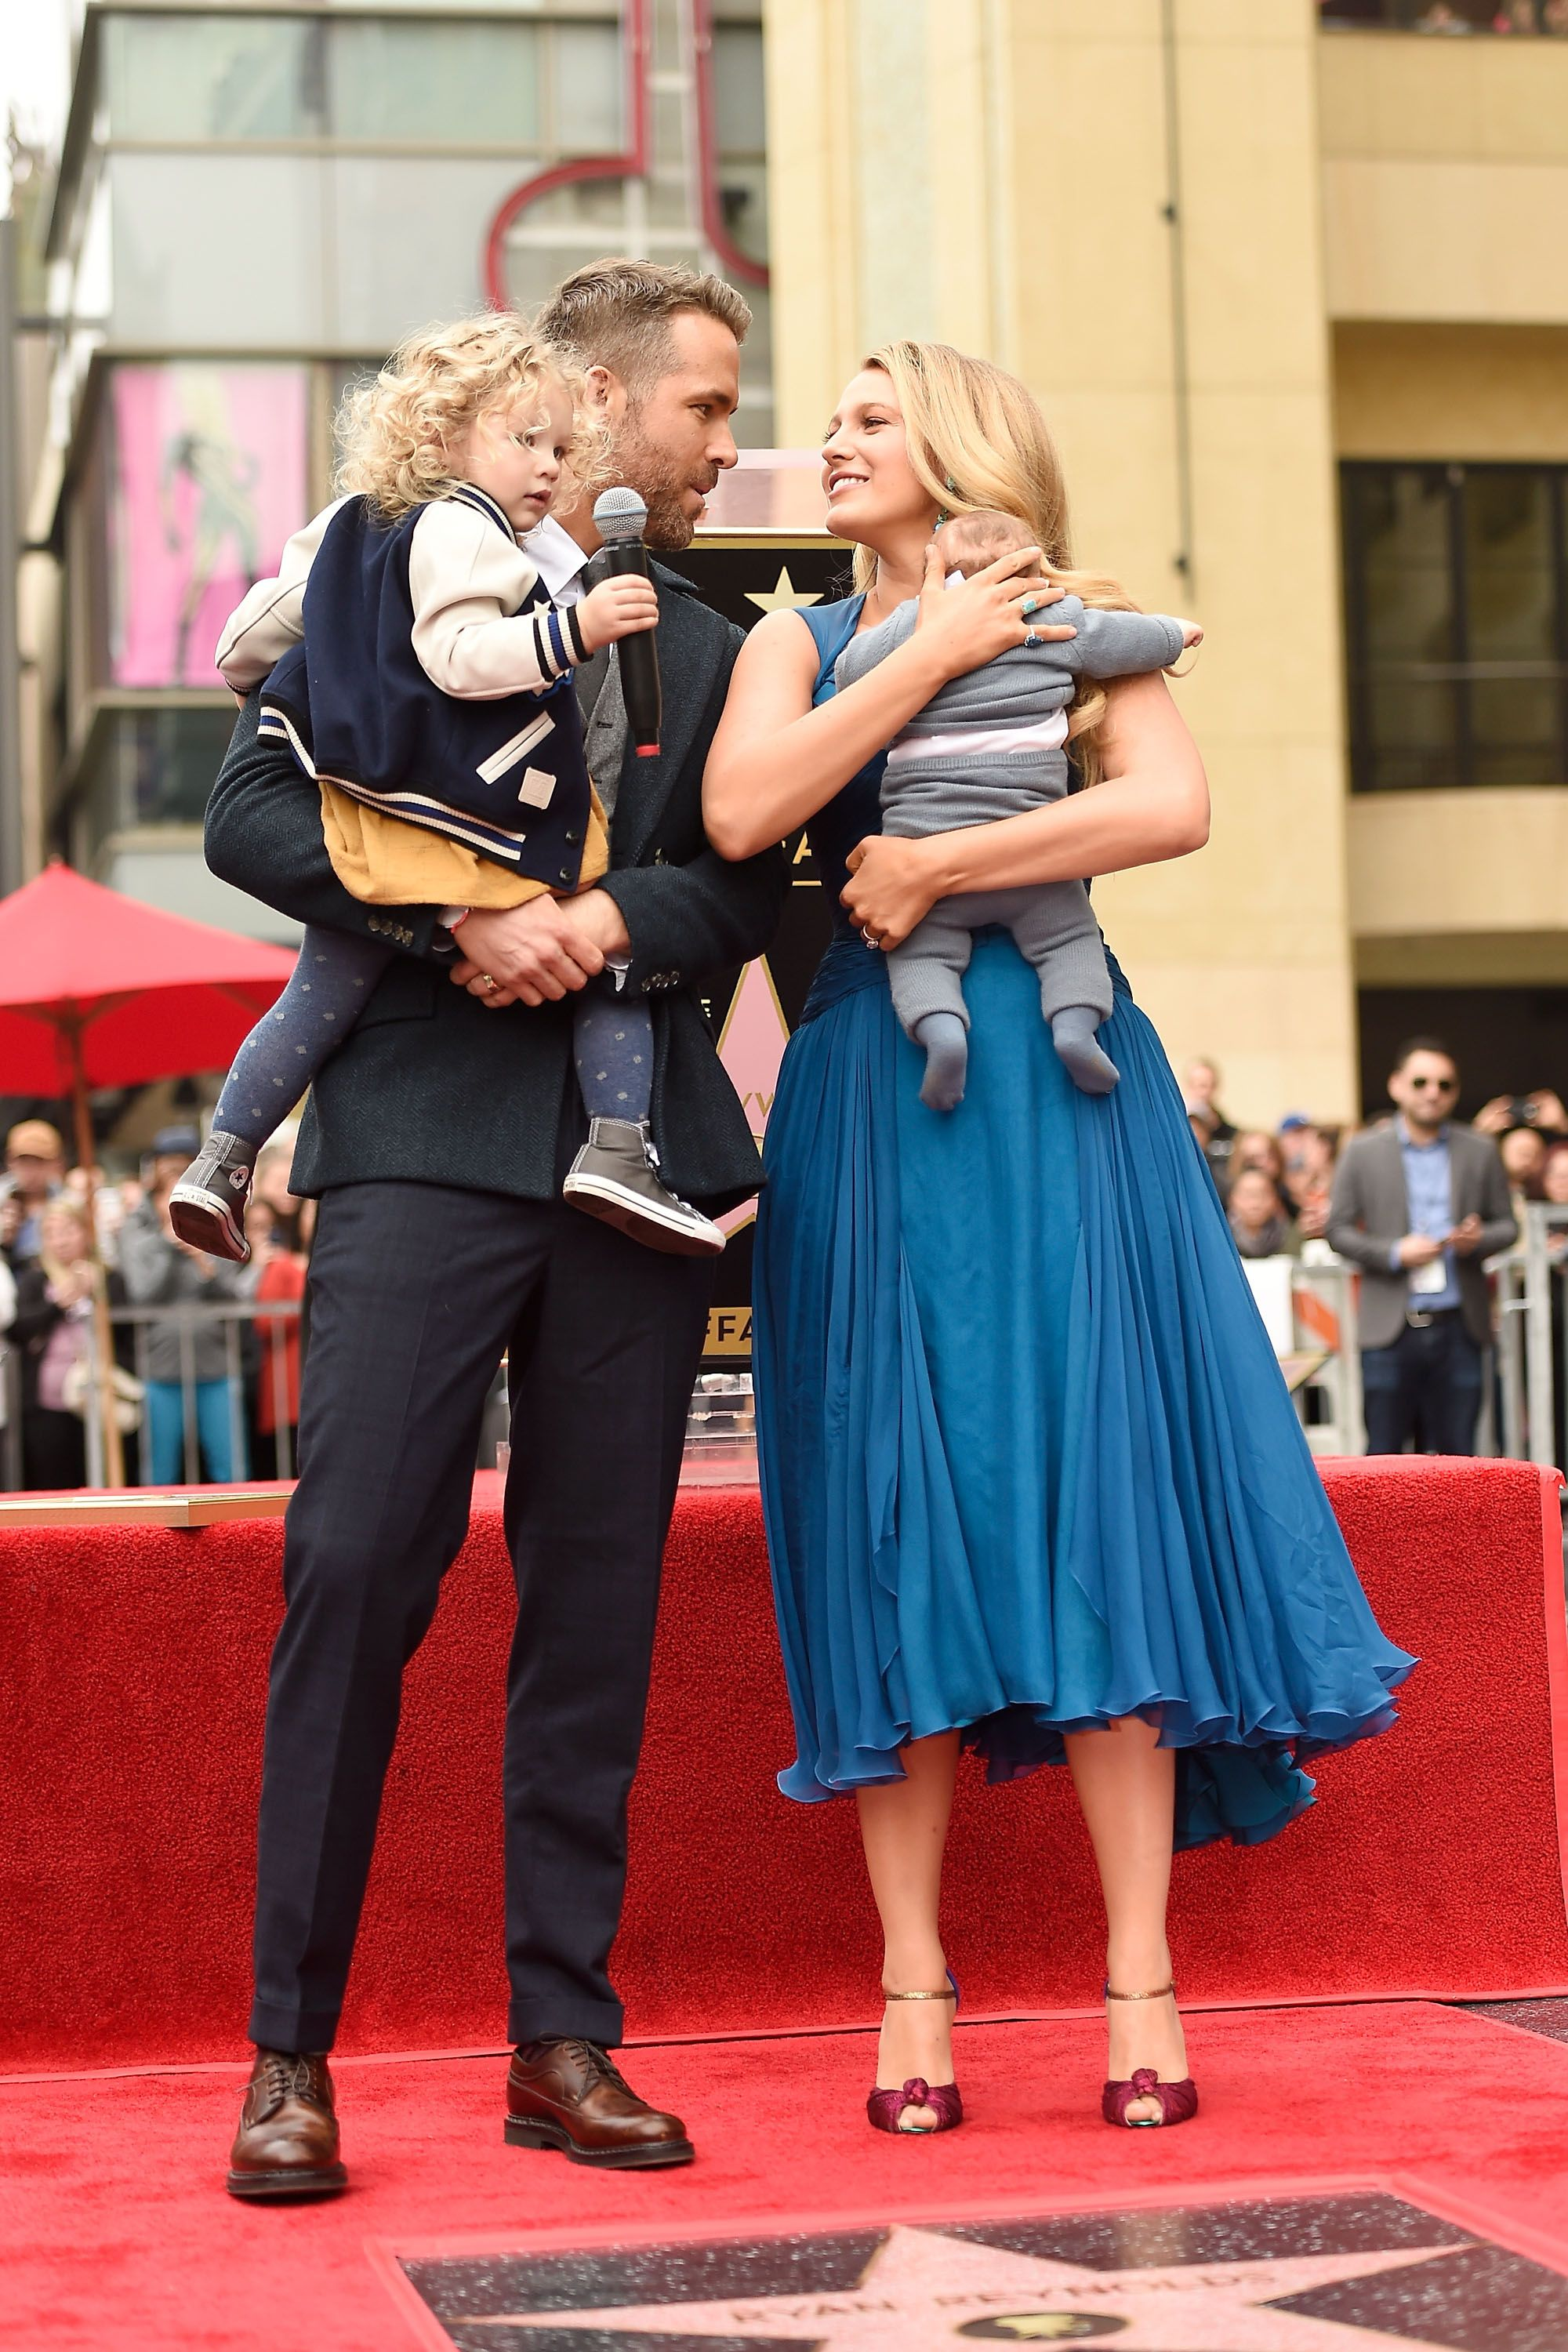 Ryan Reynolds (L) and Blake Lively pose with their daughters as Ryan Reynolds is honored with star on the Hollywood Walk of Fame. | Source: Getty Images